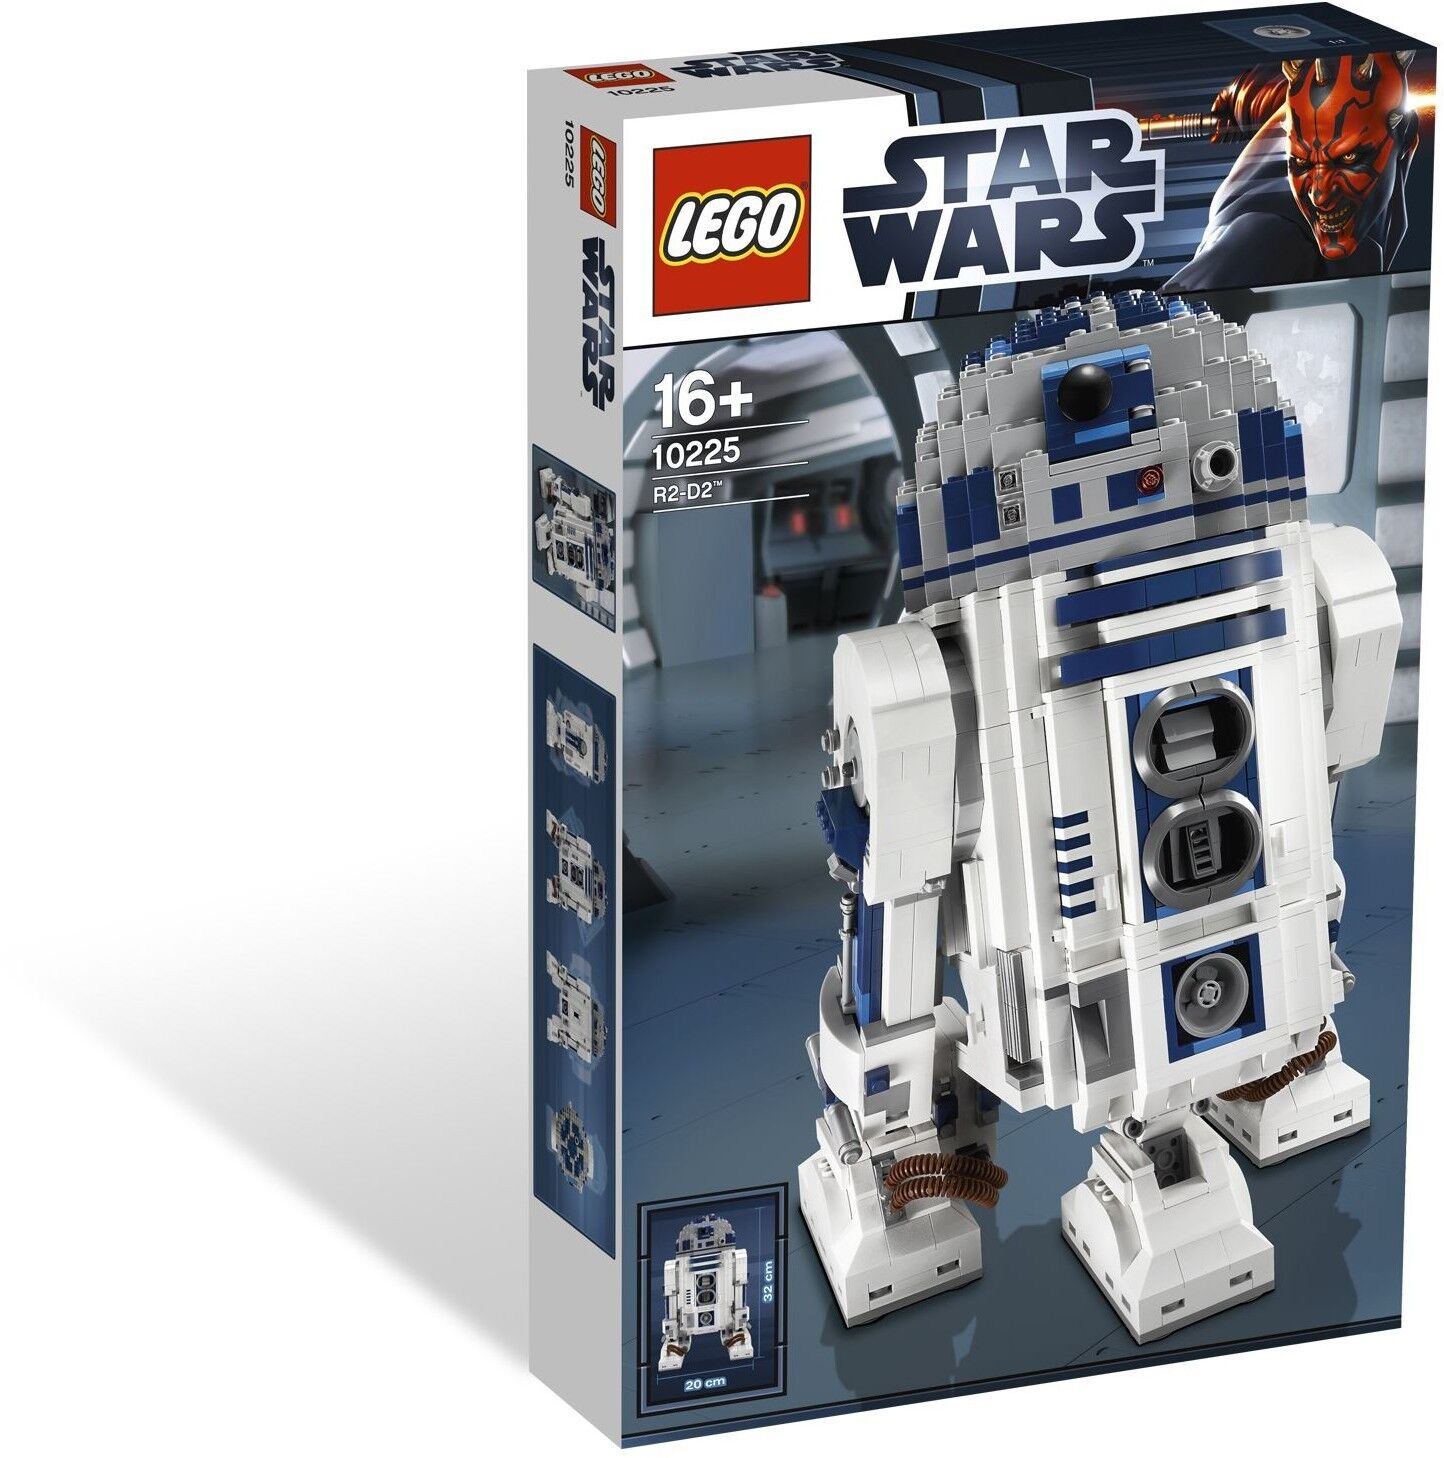 NEW Retirosso LEGO 10225 Star Wars Ultimate Collector Series UCS R2D2 Building Set